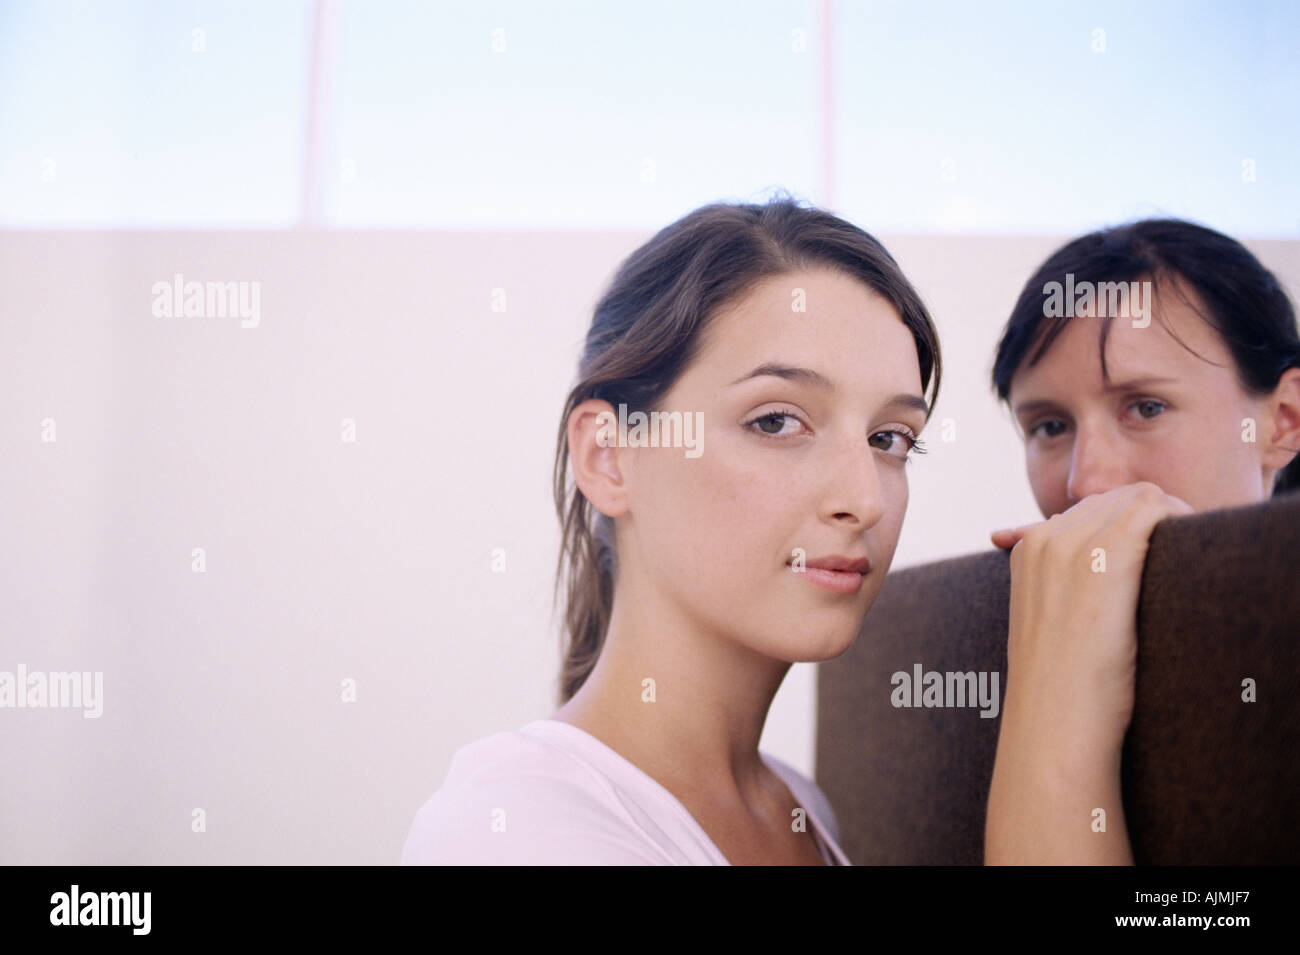 Two women chatting over divider - Stock Image